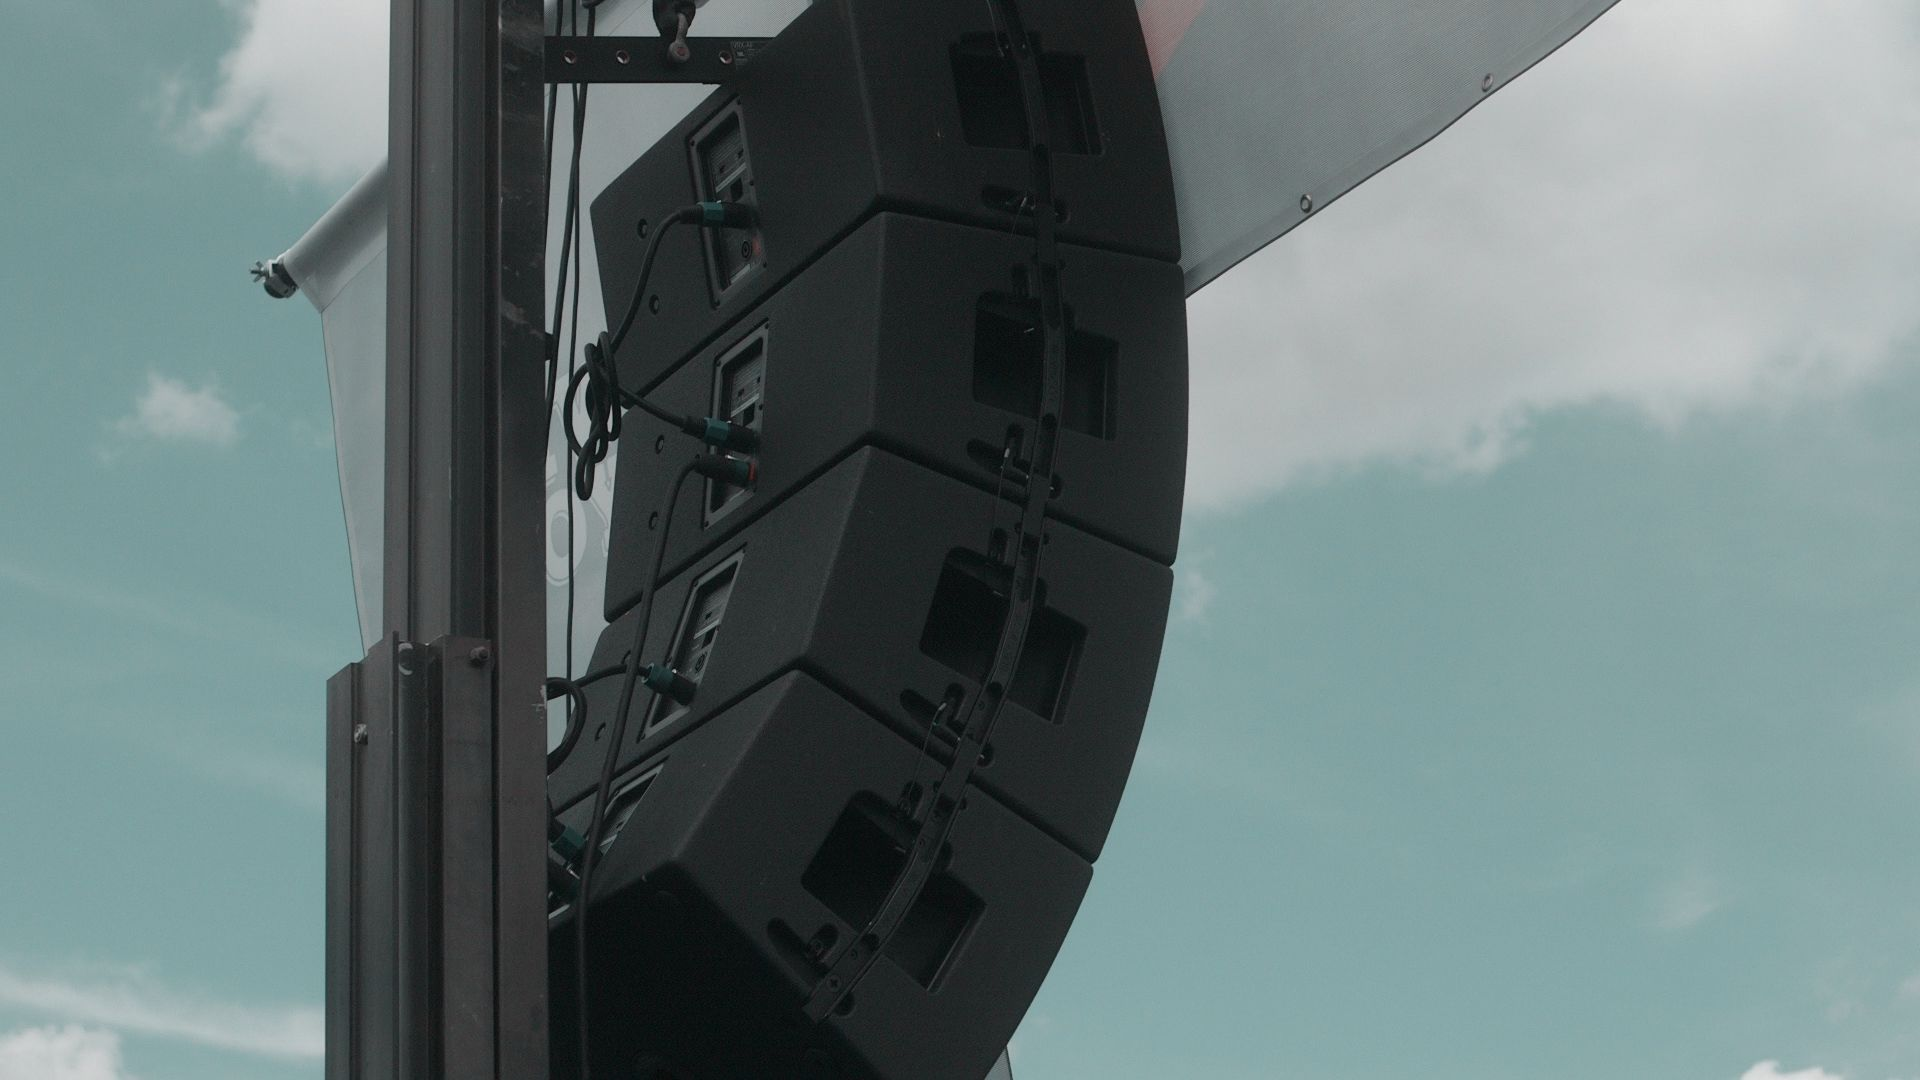 Hanging speaker on a stage at an outdoor event